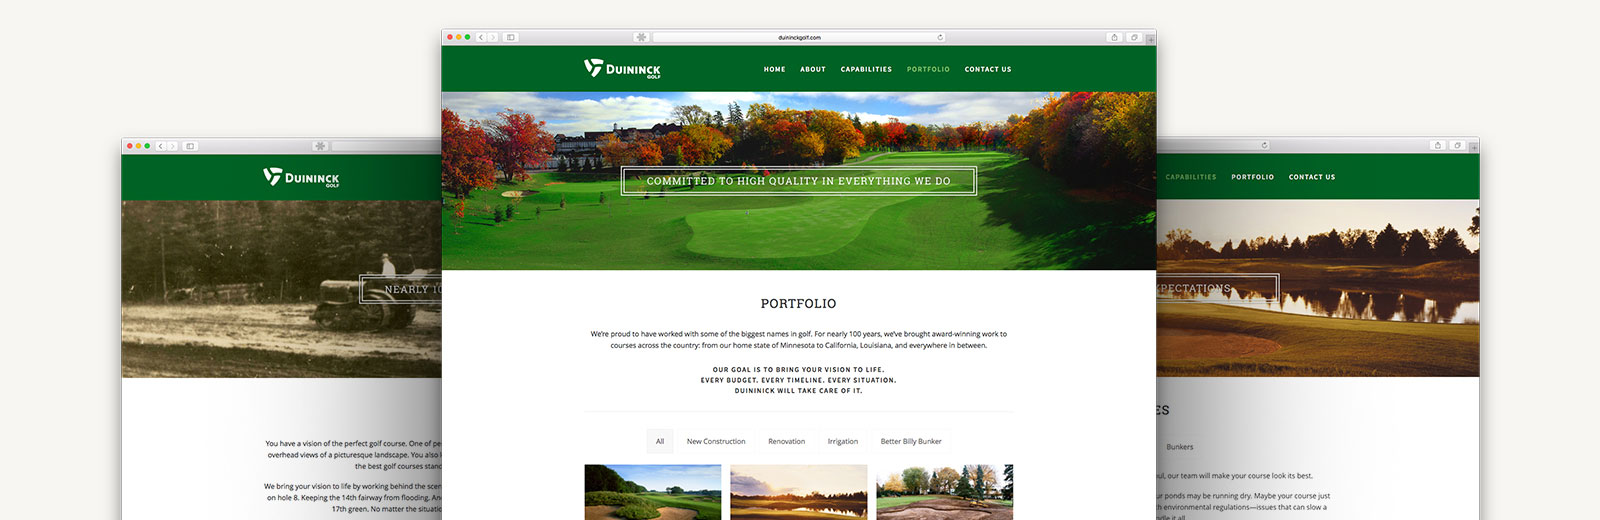 Duininck Golf Design | Macleod & Co. | Full Service Marketing Agency Minneapolis